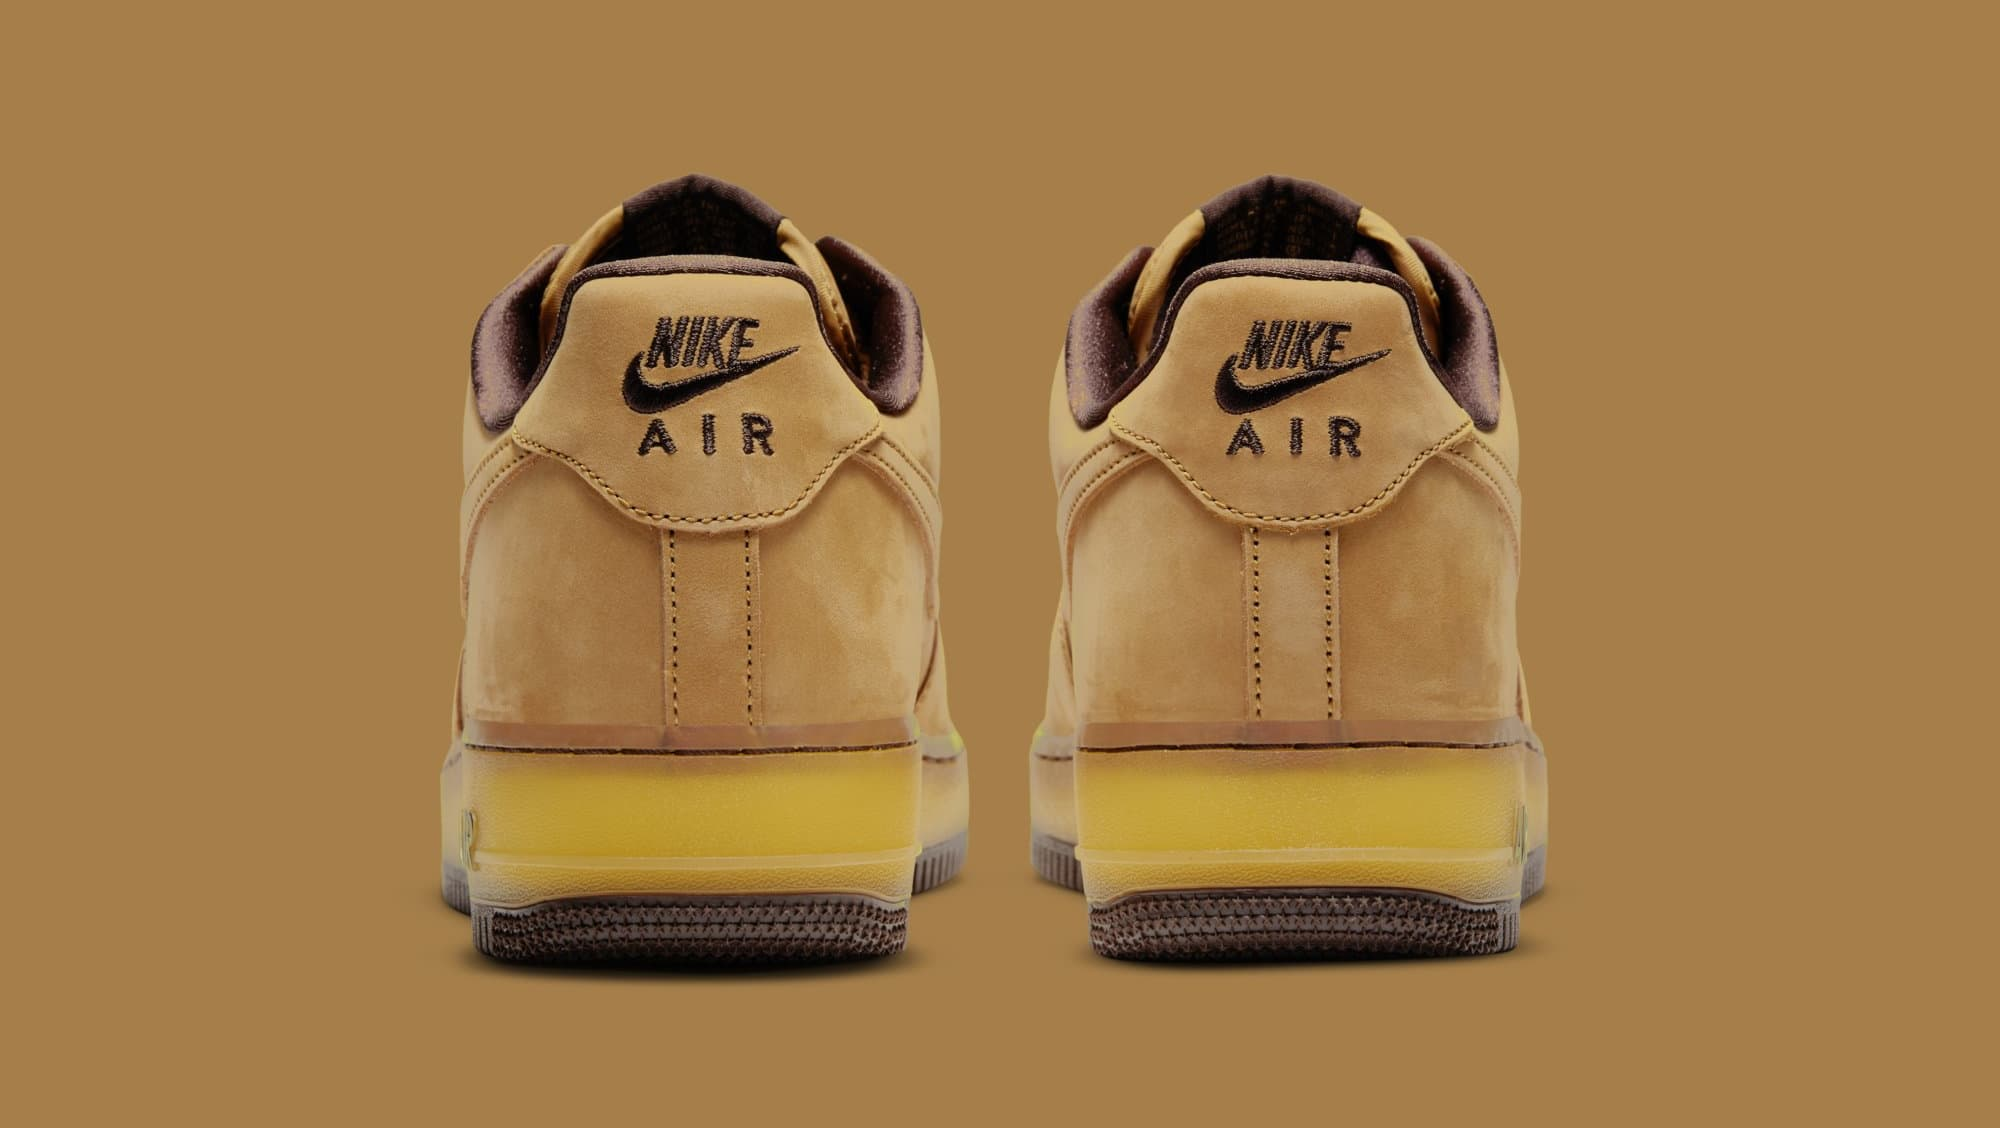 Nike Air Force 1 Low CO.JP 'Wheat Mocha' DC7504-700 Heel